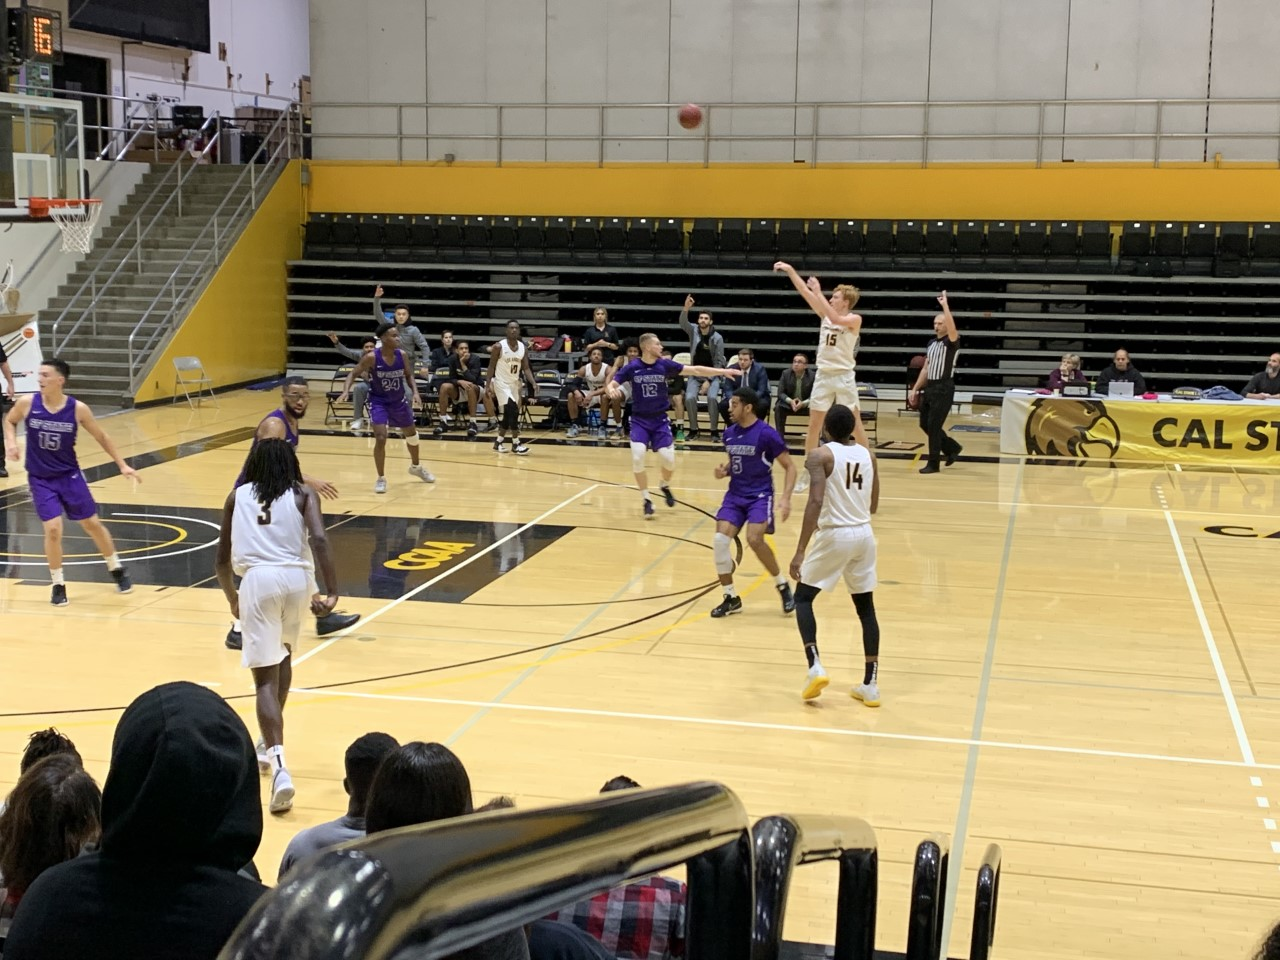 Golden Eagles lose against San Francisco State in a home game of 72-73.